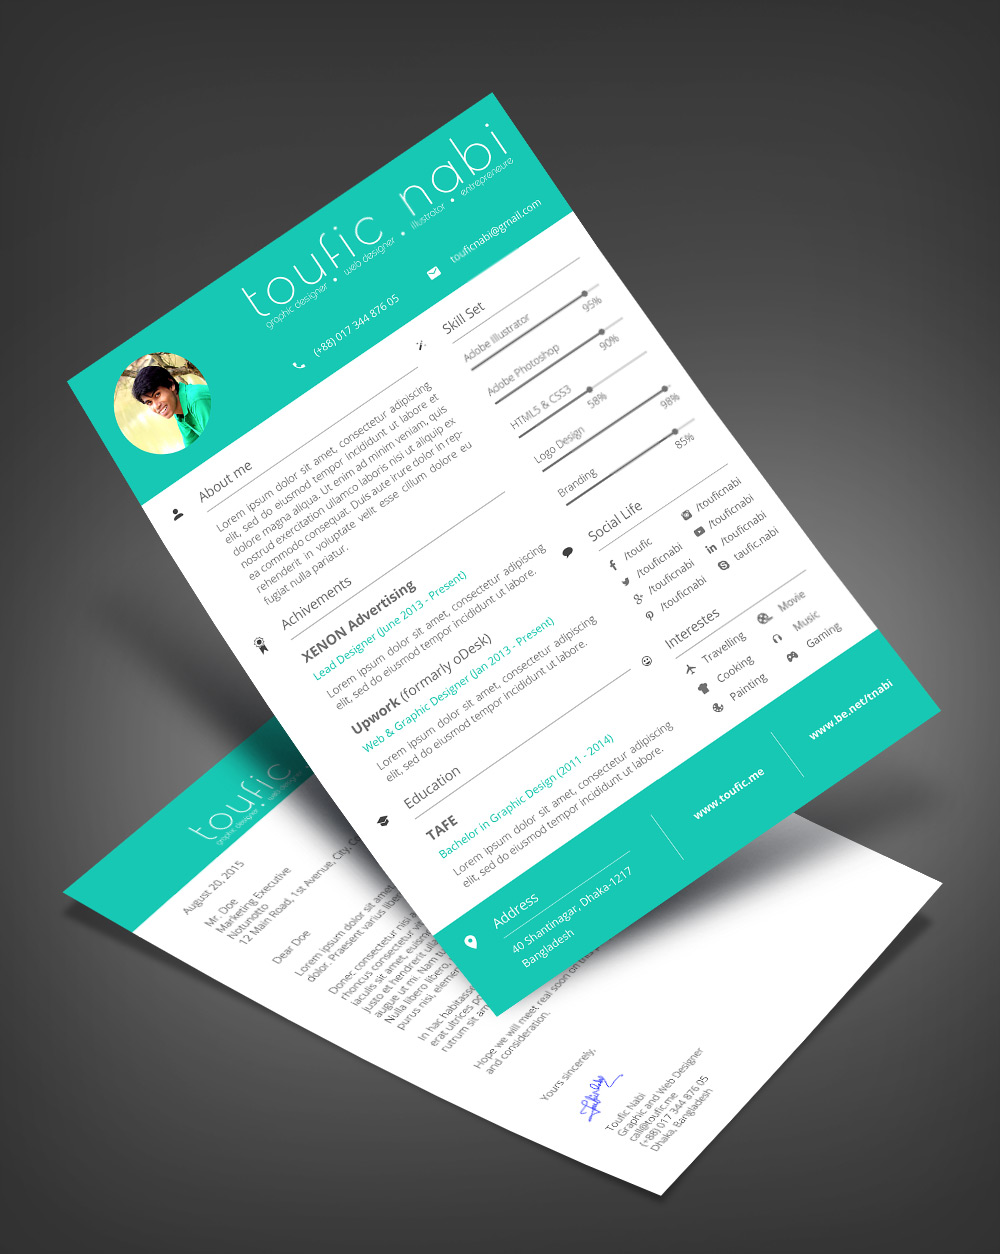 free resume design template cover letter for designers psd file - Free Resume Design Templates